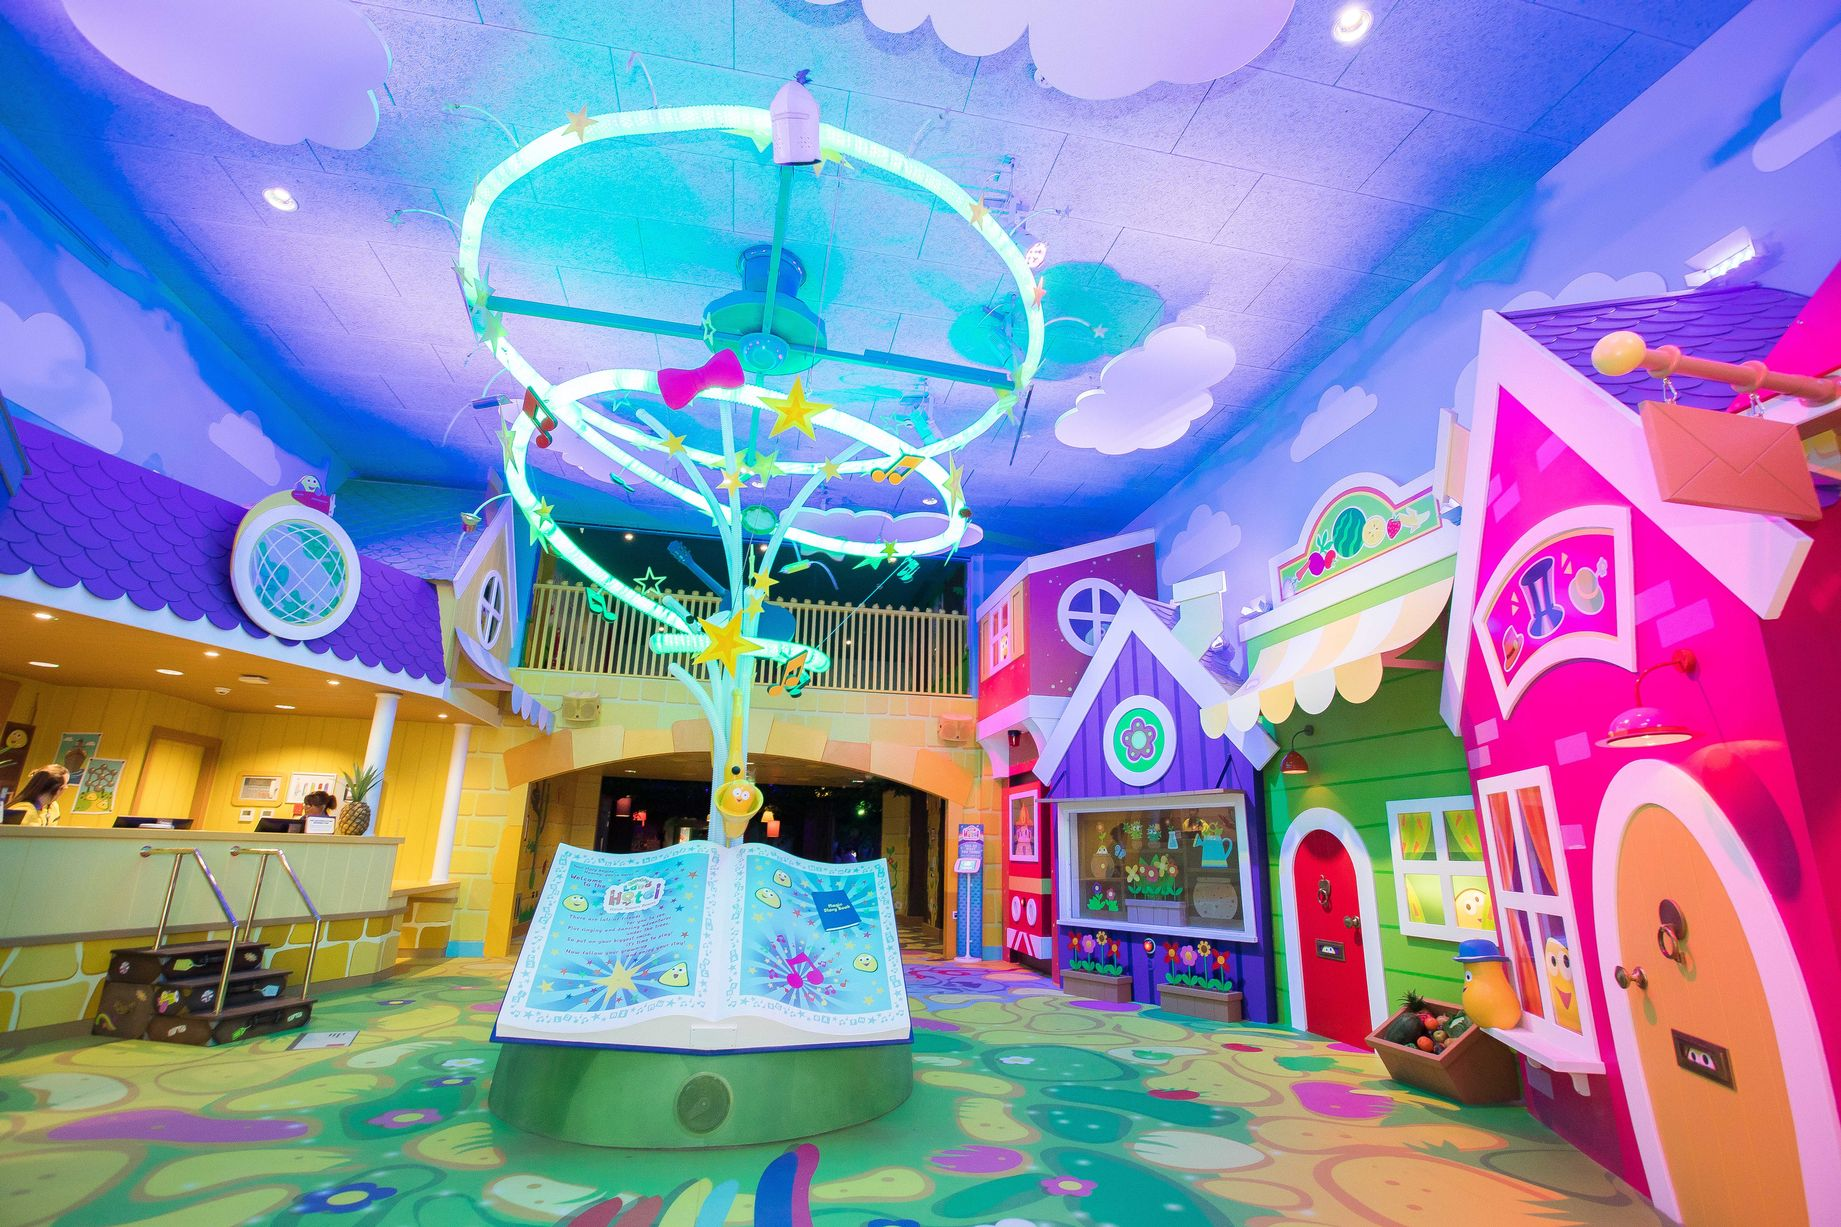 CBEEBIES LAND HOTEL ALTON TOWERS LOBBY <strong>| Unique IP themed hotel for young families</strong>